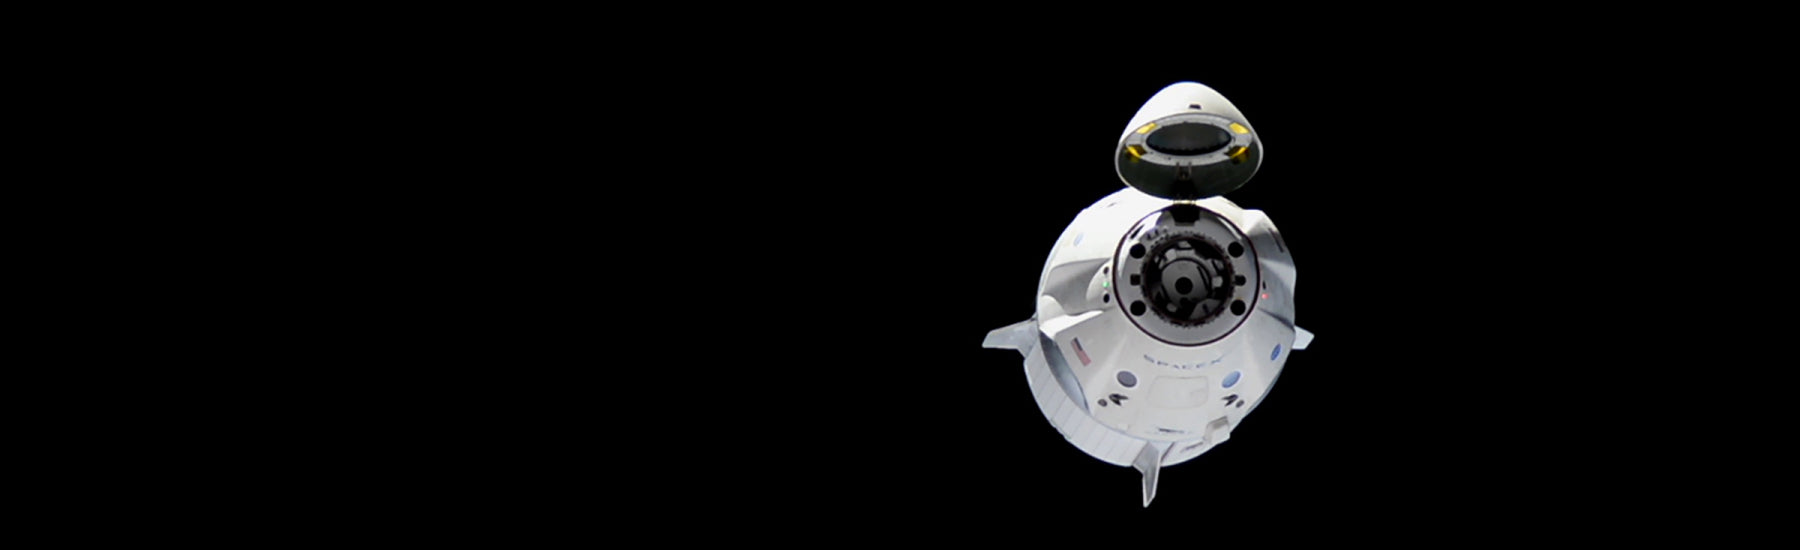 SpaceX to Launch Astronauts + ISS Docking Simulator!